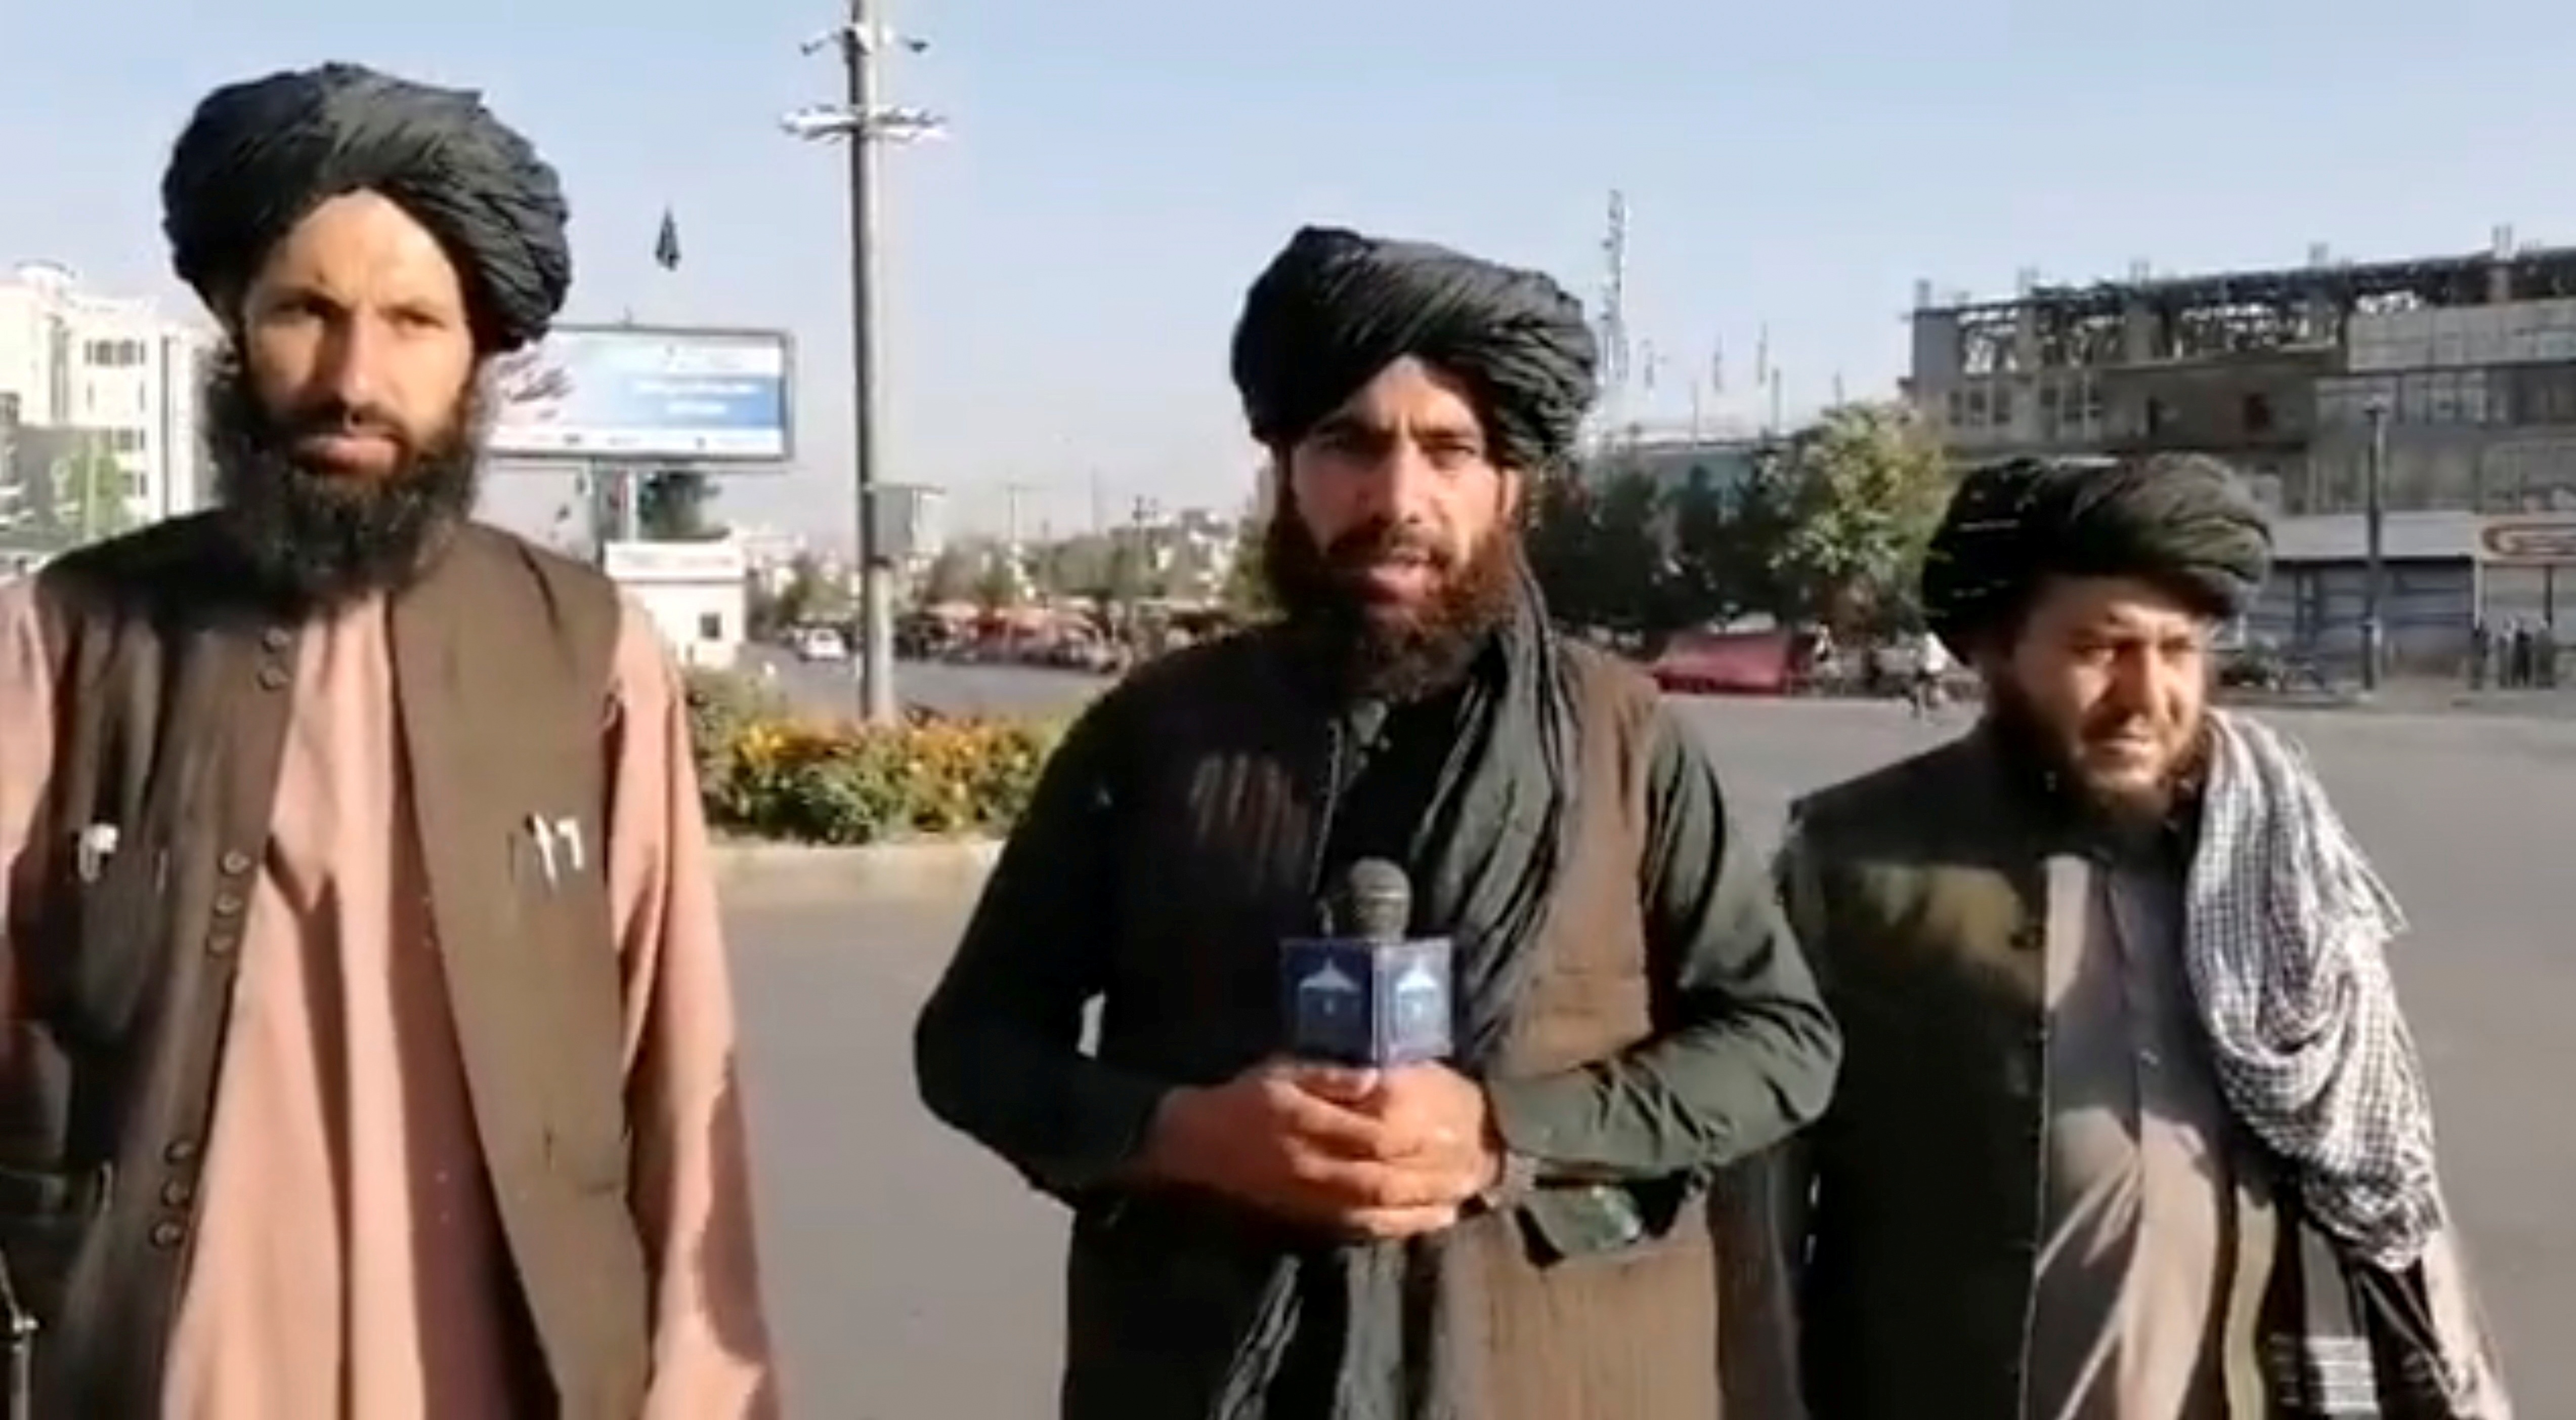 A man holds a wireless microphone as he speaks on the street in Kabul, Afghanistan, in this still image taken from social media video uploaded August 16, 2021 and obtained by REUTERS THIS IMAGE HAS BEEN SUPPLIED BY A THIRD PARTY./File Photo